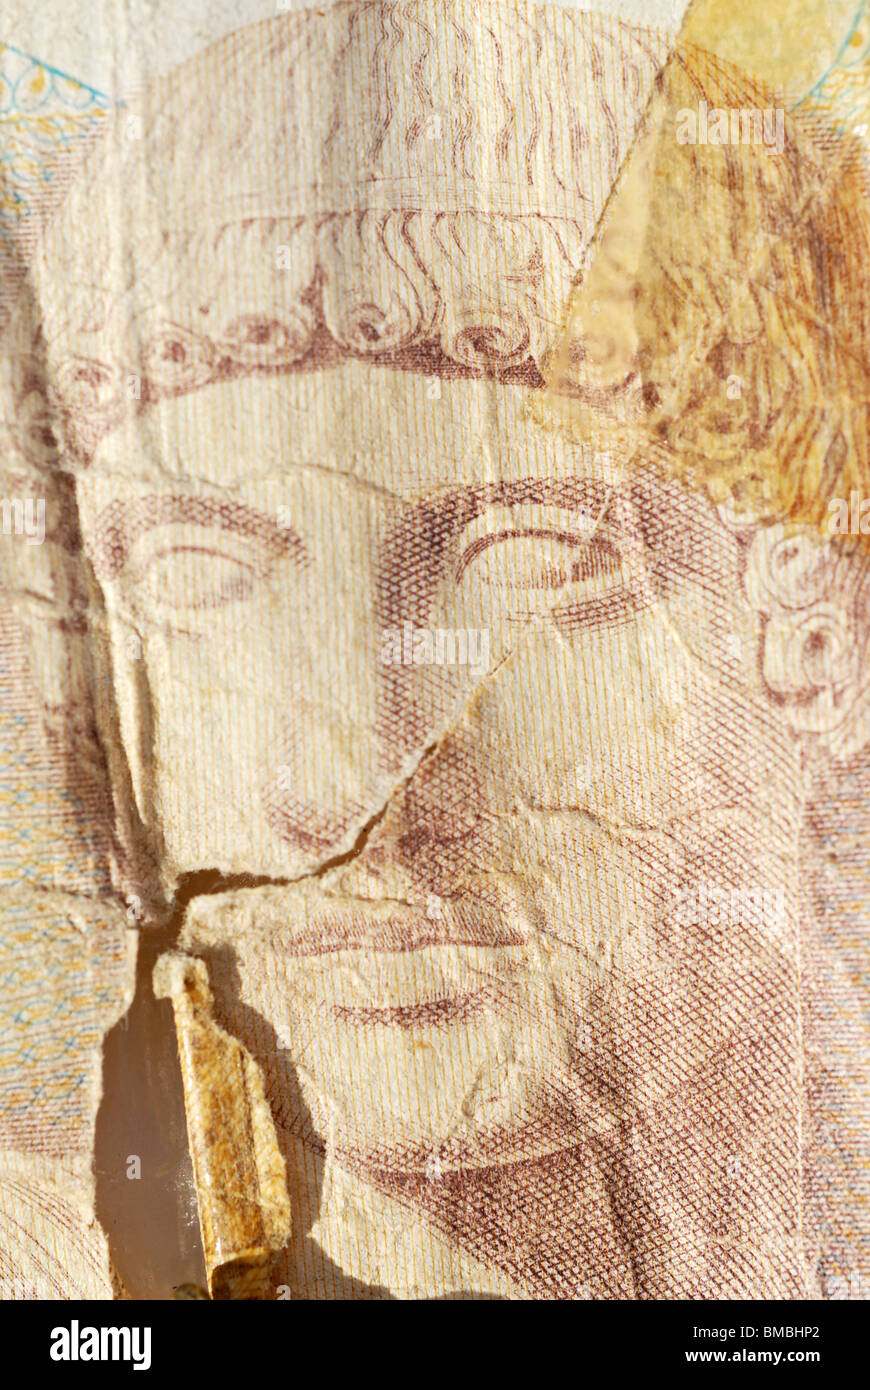 Detail of 1000 Drachmen-Note, the old Greece Money - Stock Image